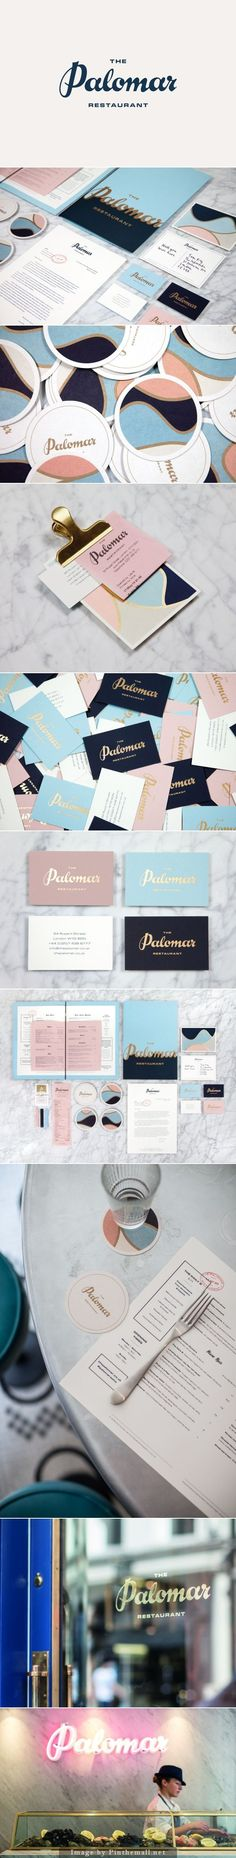 Love the color scheme and also the idea of multiple runs of biz cards in each of the 3 branded colors.